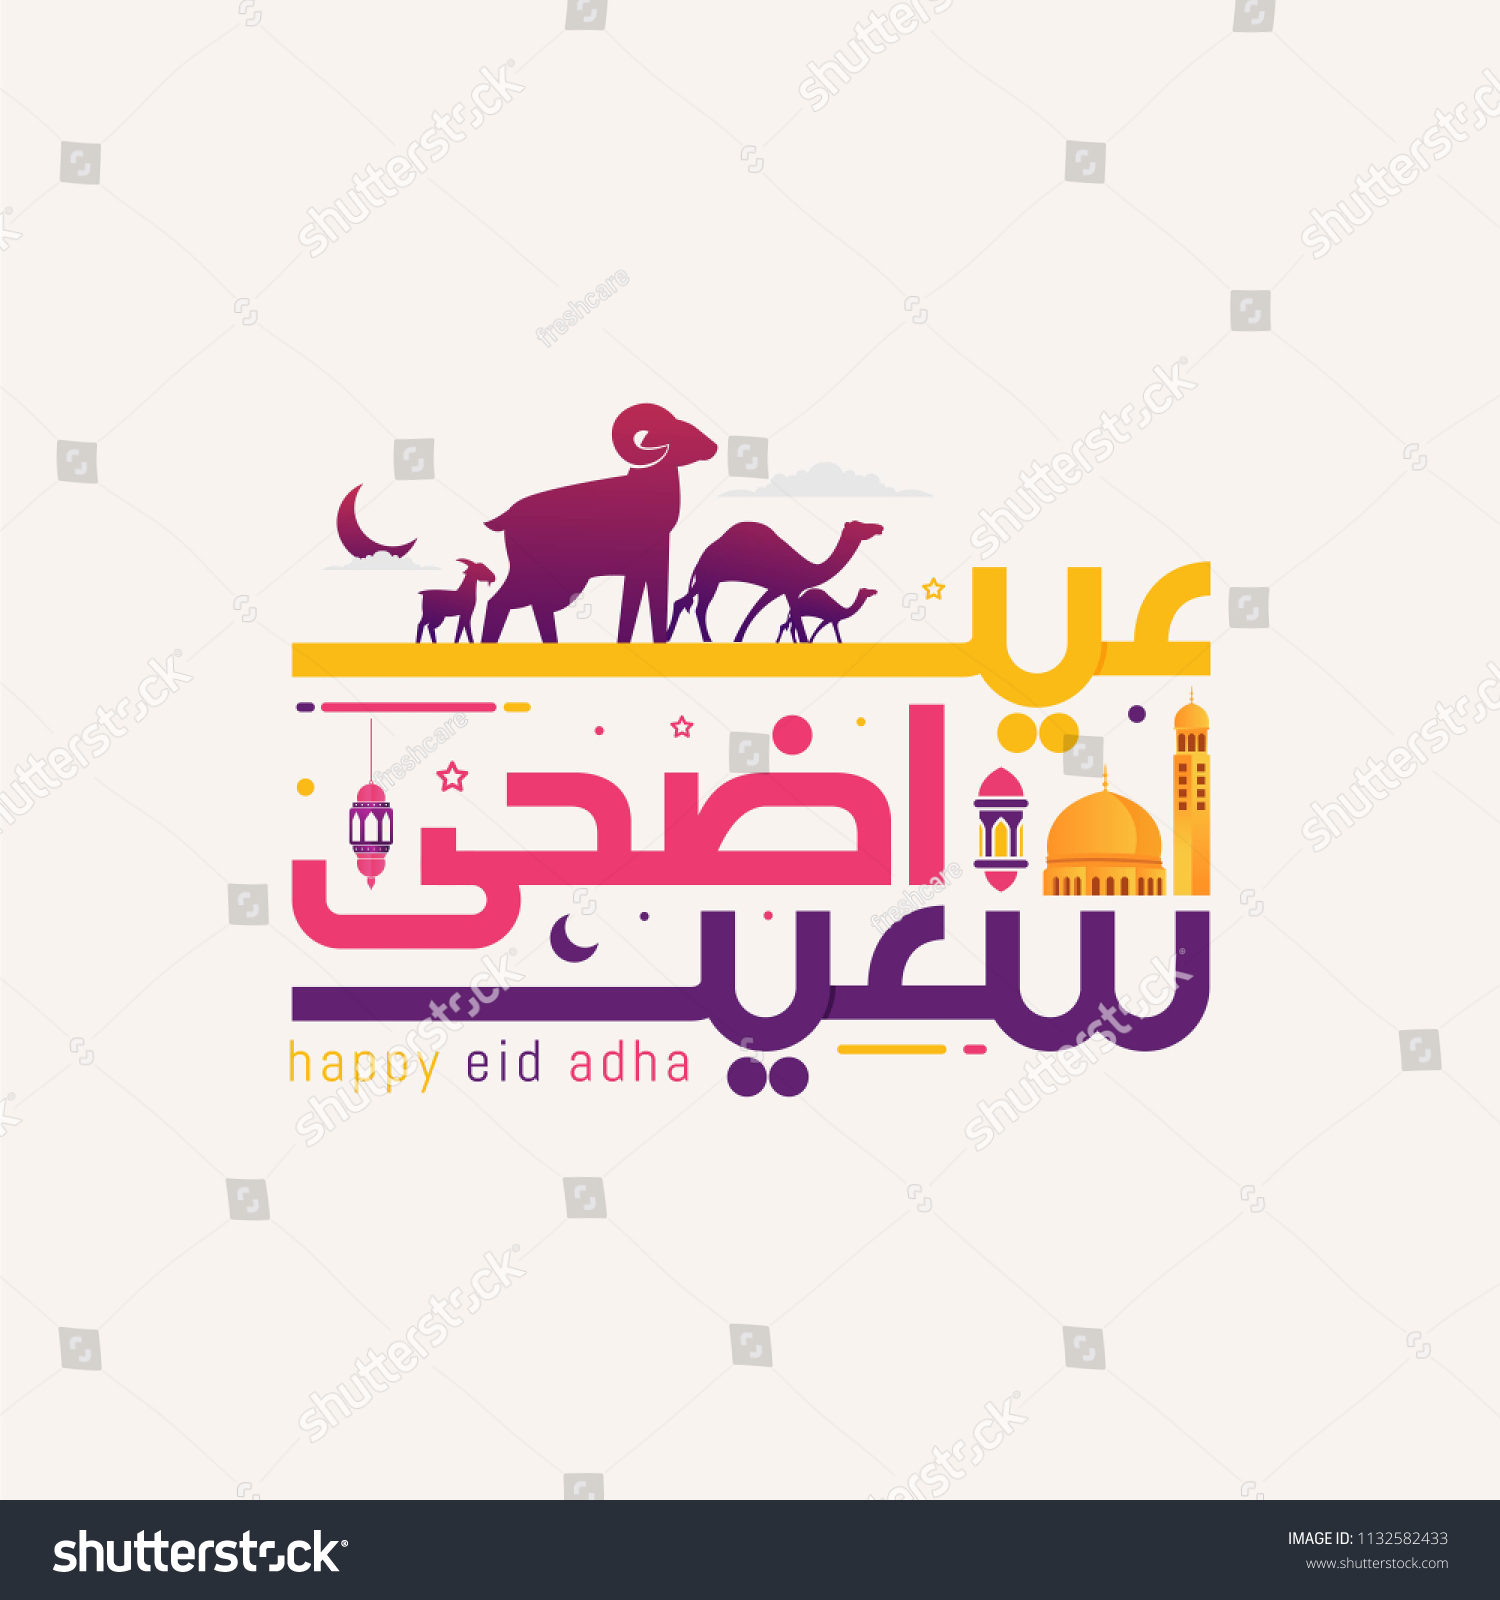 Eid Al Adha cute calligraphy vector. Celebration of Muslim holiday the sacrifice a camel, sheep and goat #1132582433